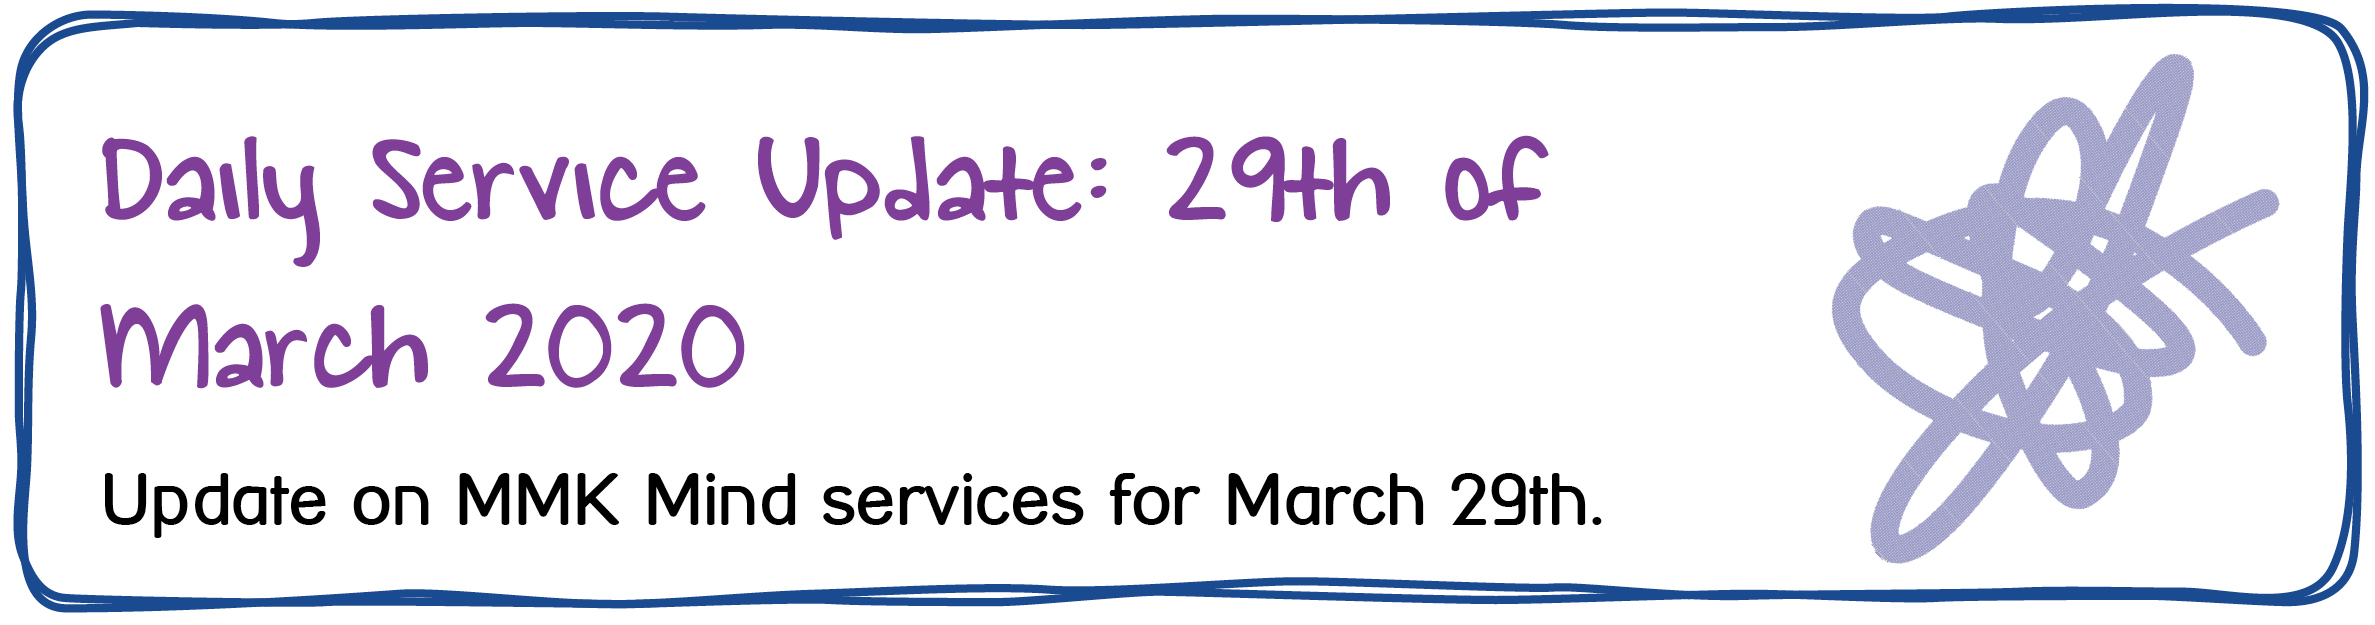 Daily Service Update: 29th of March 2020